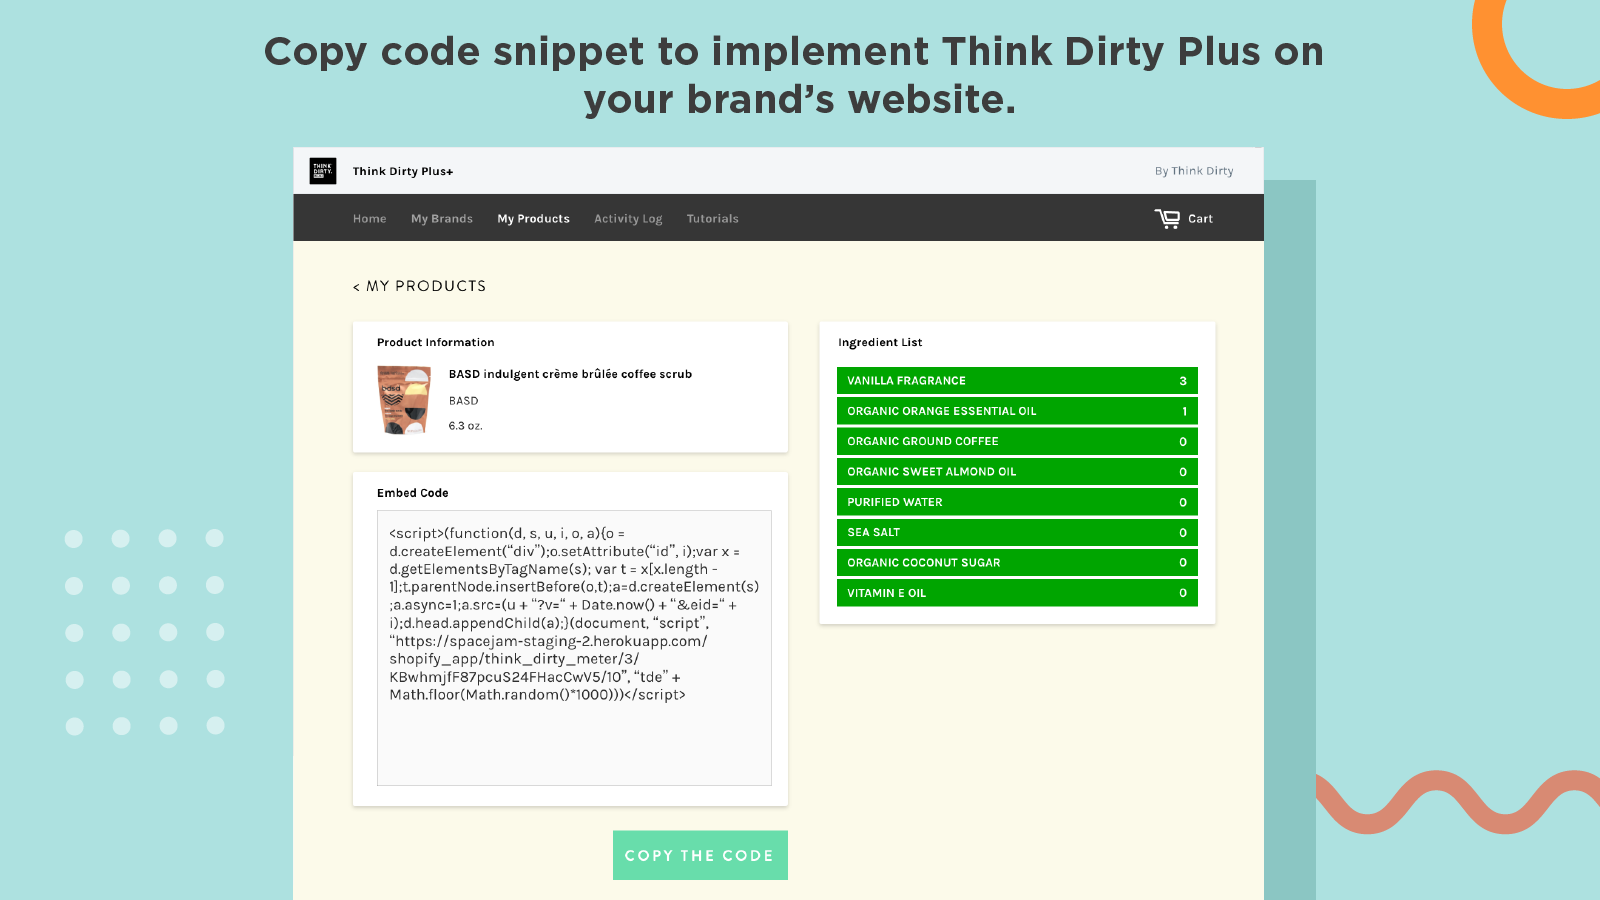 Copy code snippet to implement Think Dirty Plus on your site